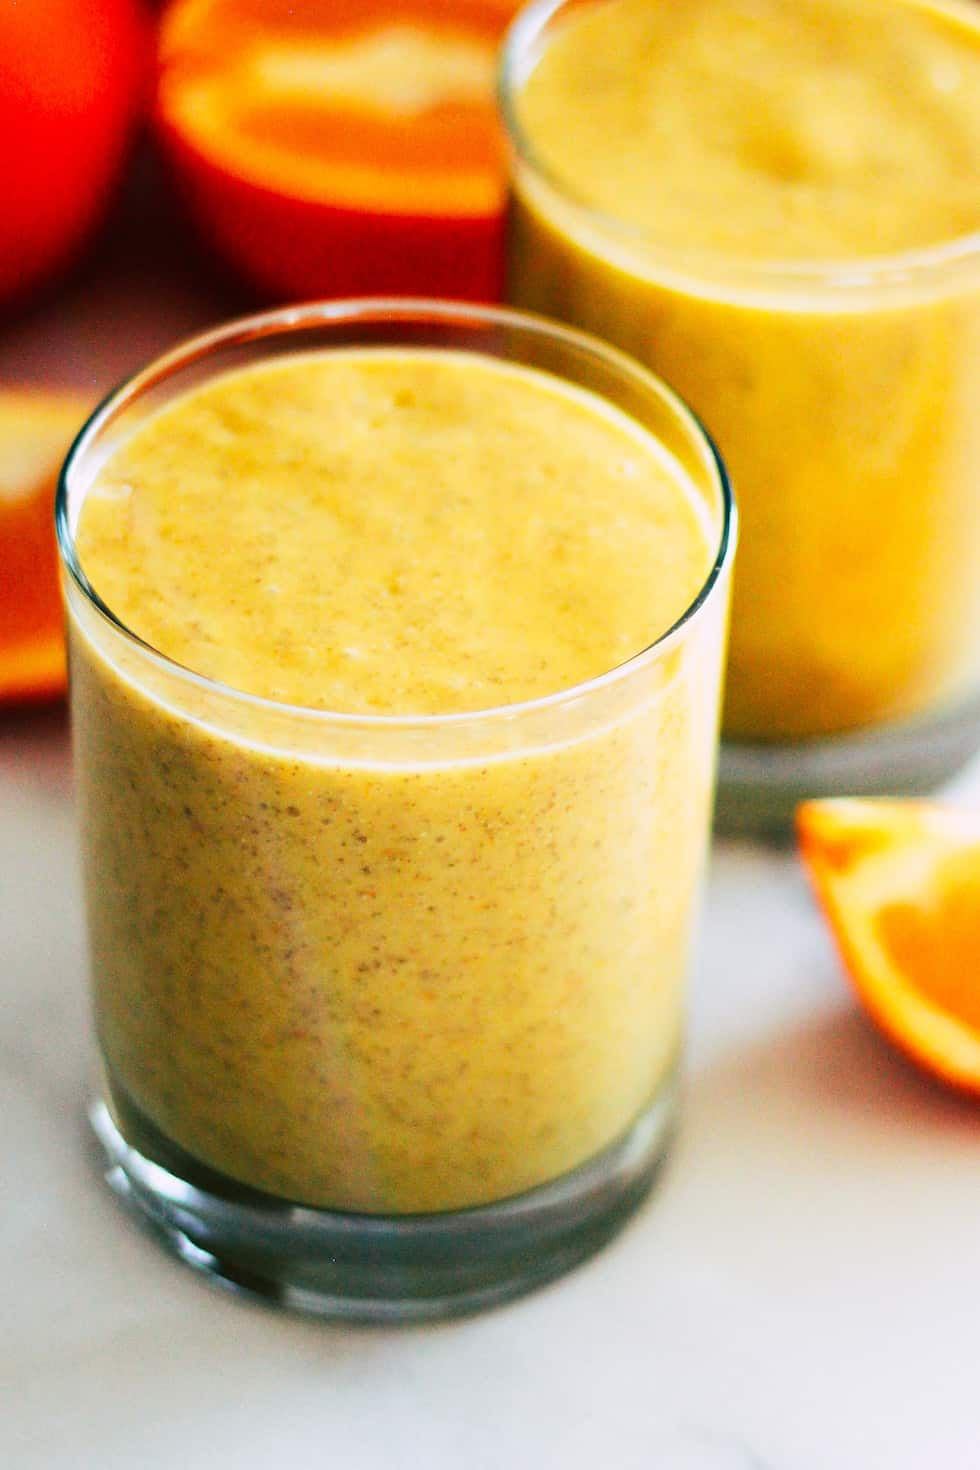 Yellow Mango Orange Smoothie in a glass surrounded by oranges.